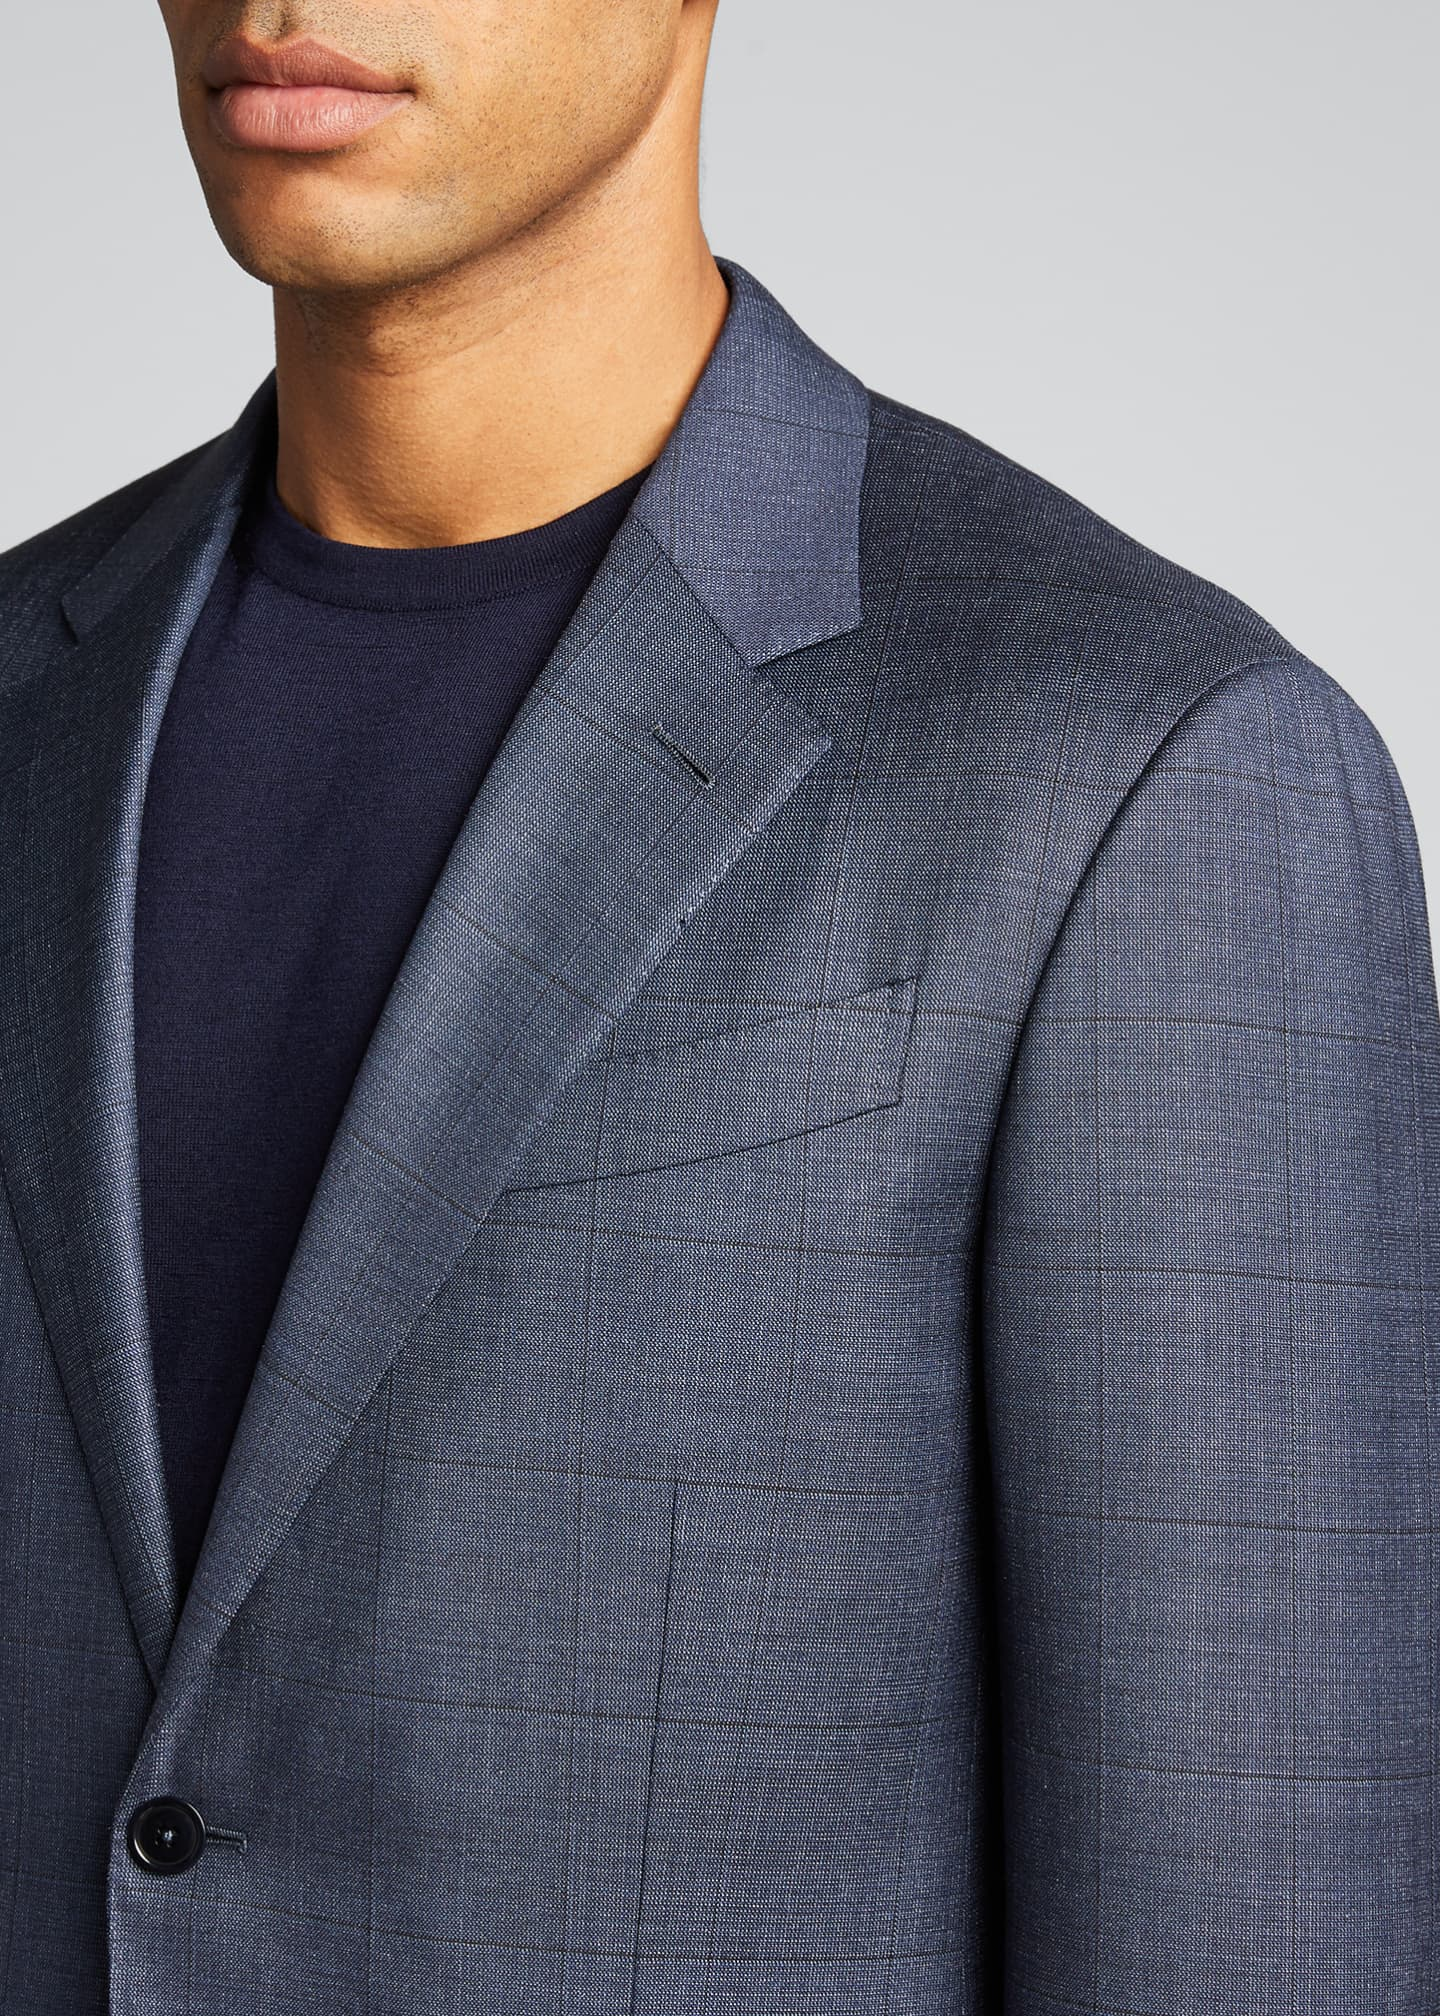 Image 4 of 5: Men's Tic Windowpane Regular-Fit Two-Piece Suit